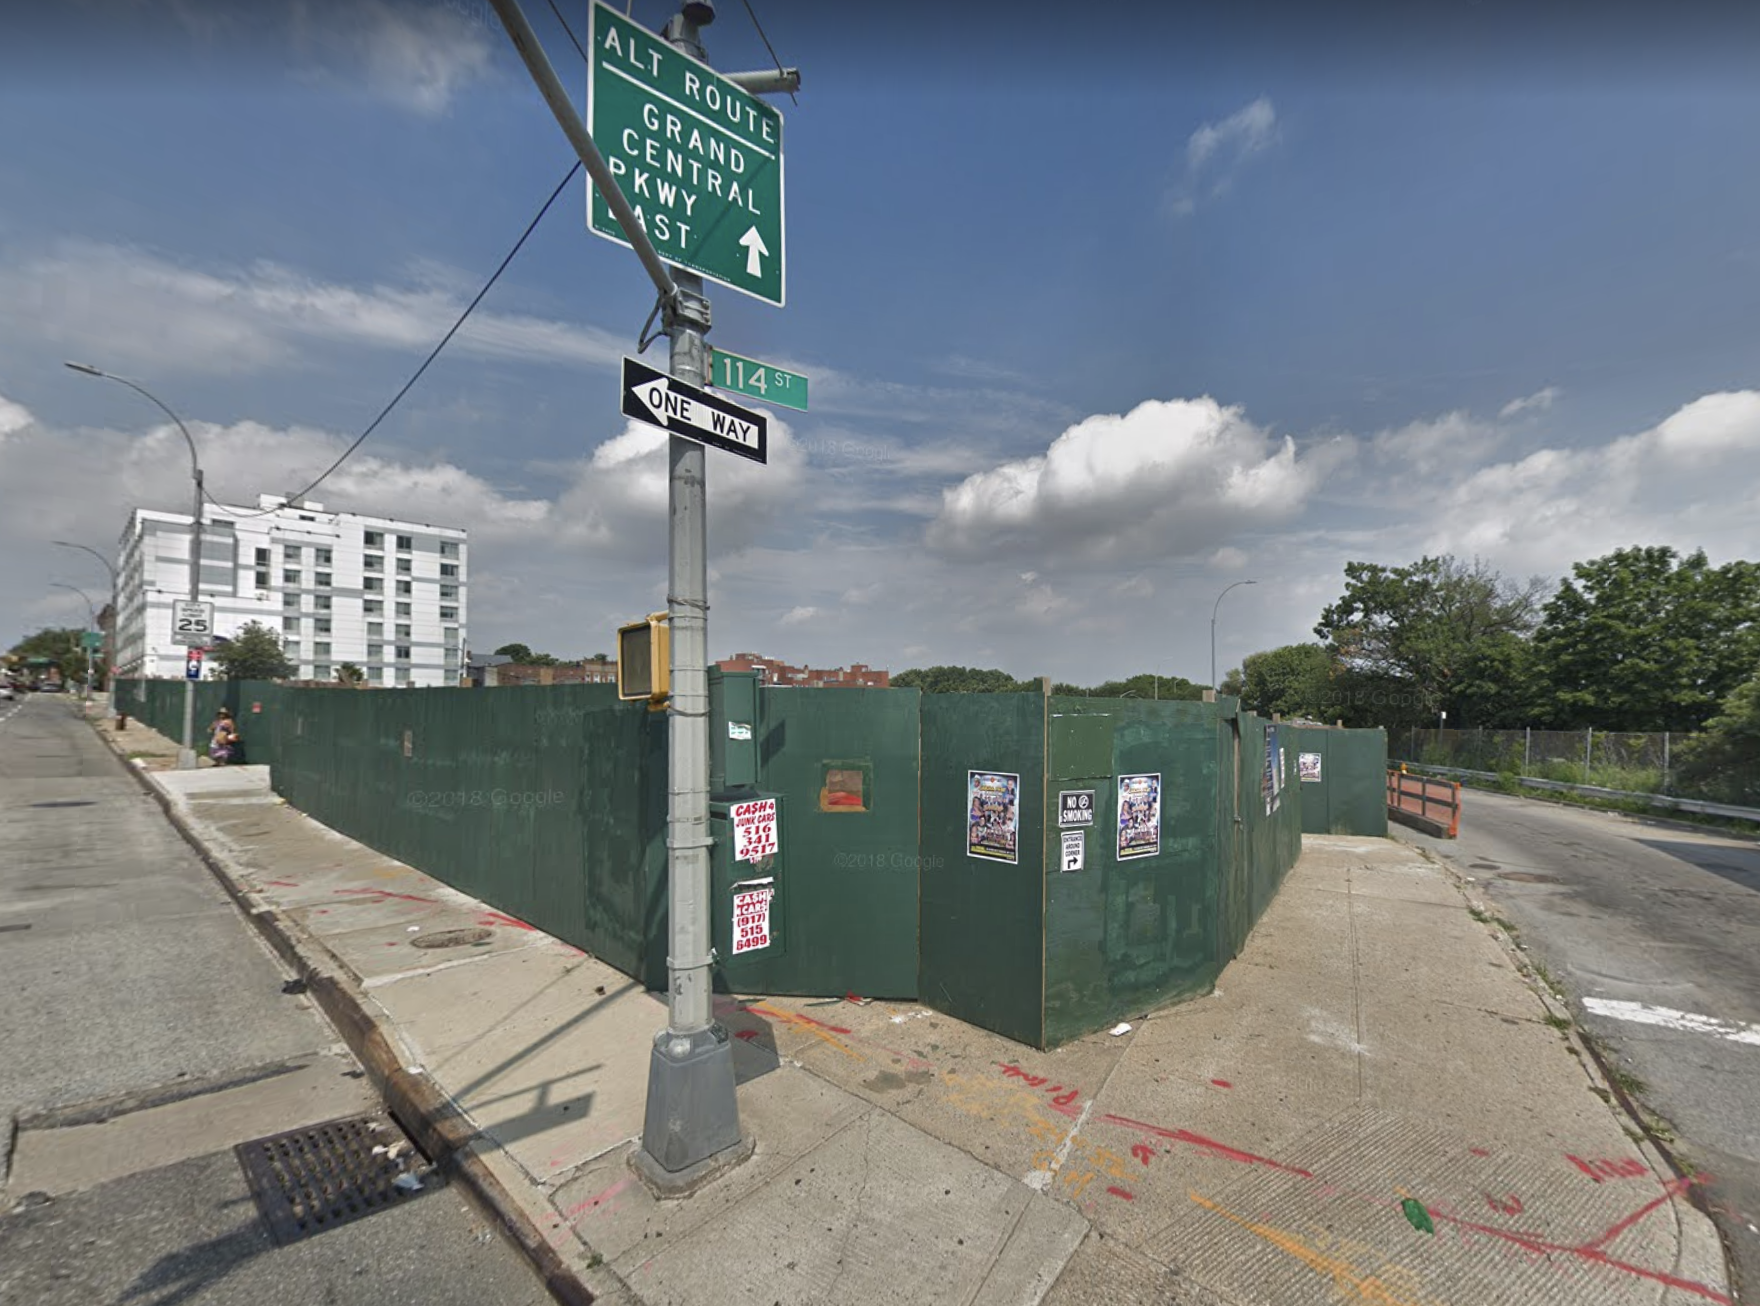 A street cave-in occurred at a construction site near the corner of Northern Boulevard and 114th Street on Friday. Photo via Google Maps